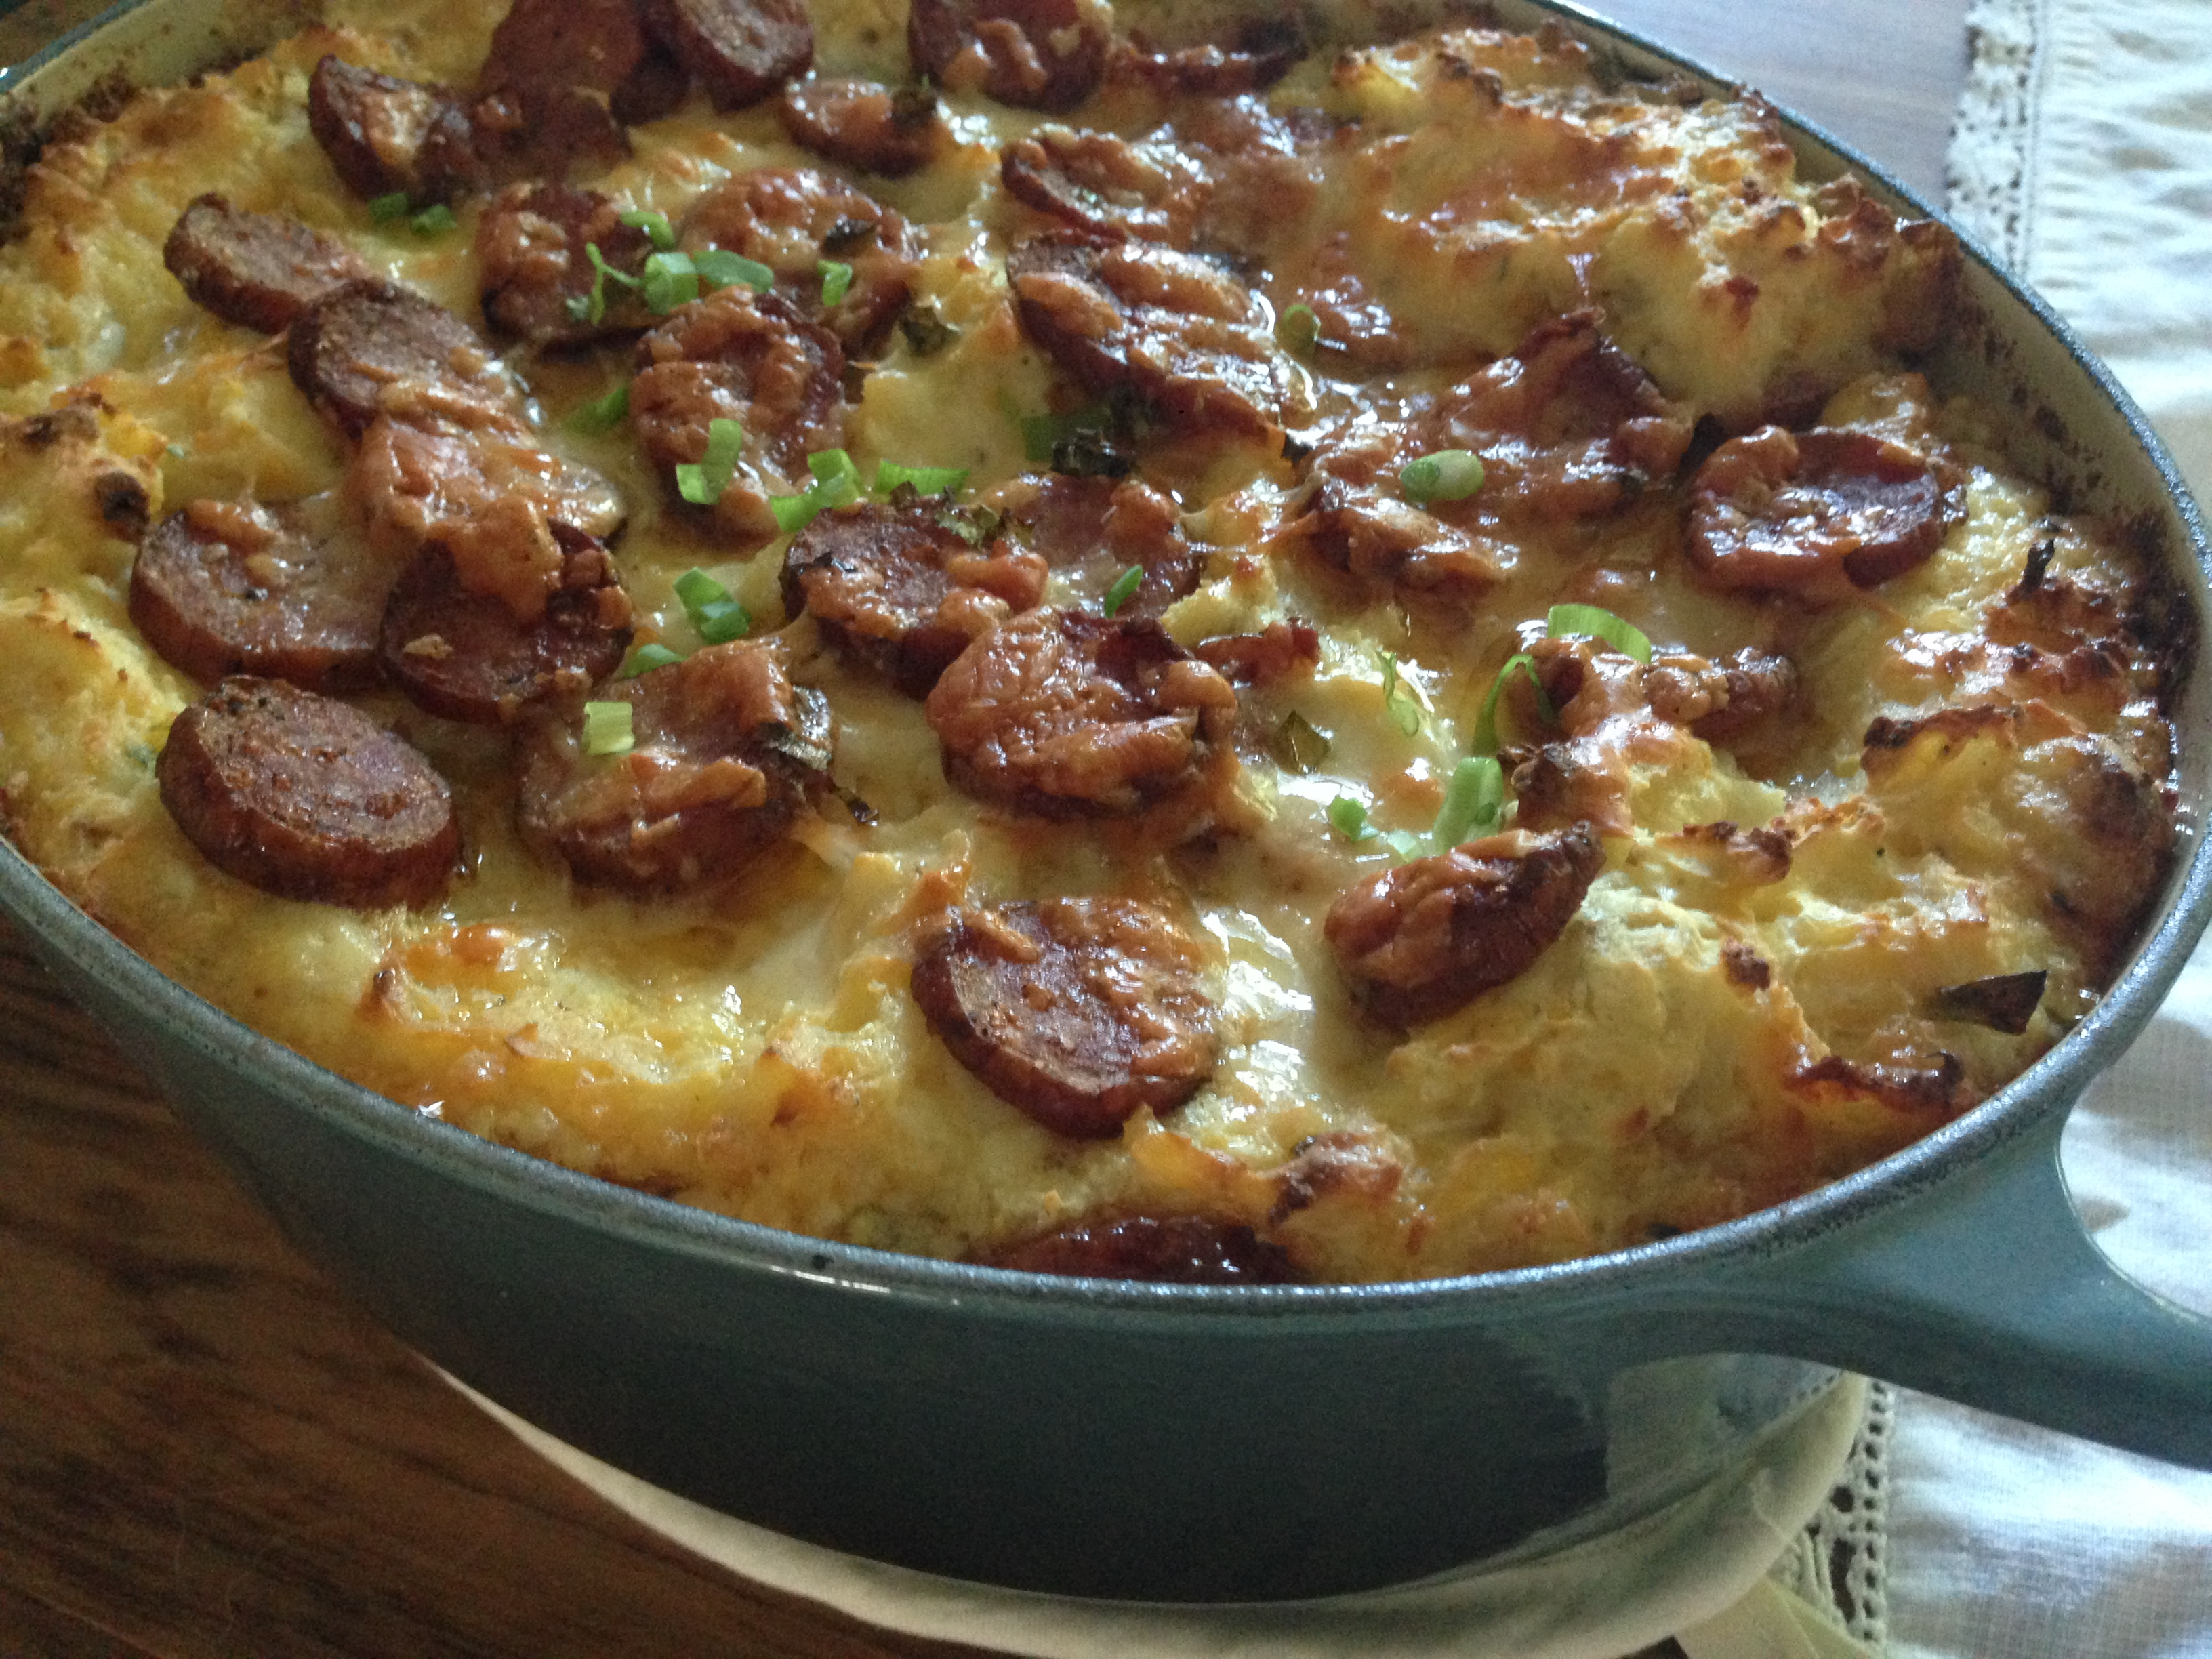 Sweet Smoked German Sausage & Cheesy Green Onion ((carrot)) Mashed Potato Casserole